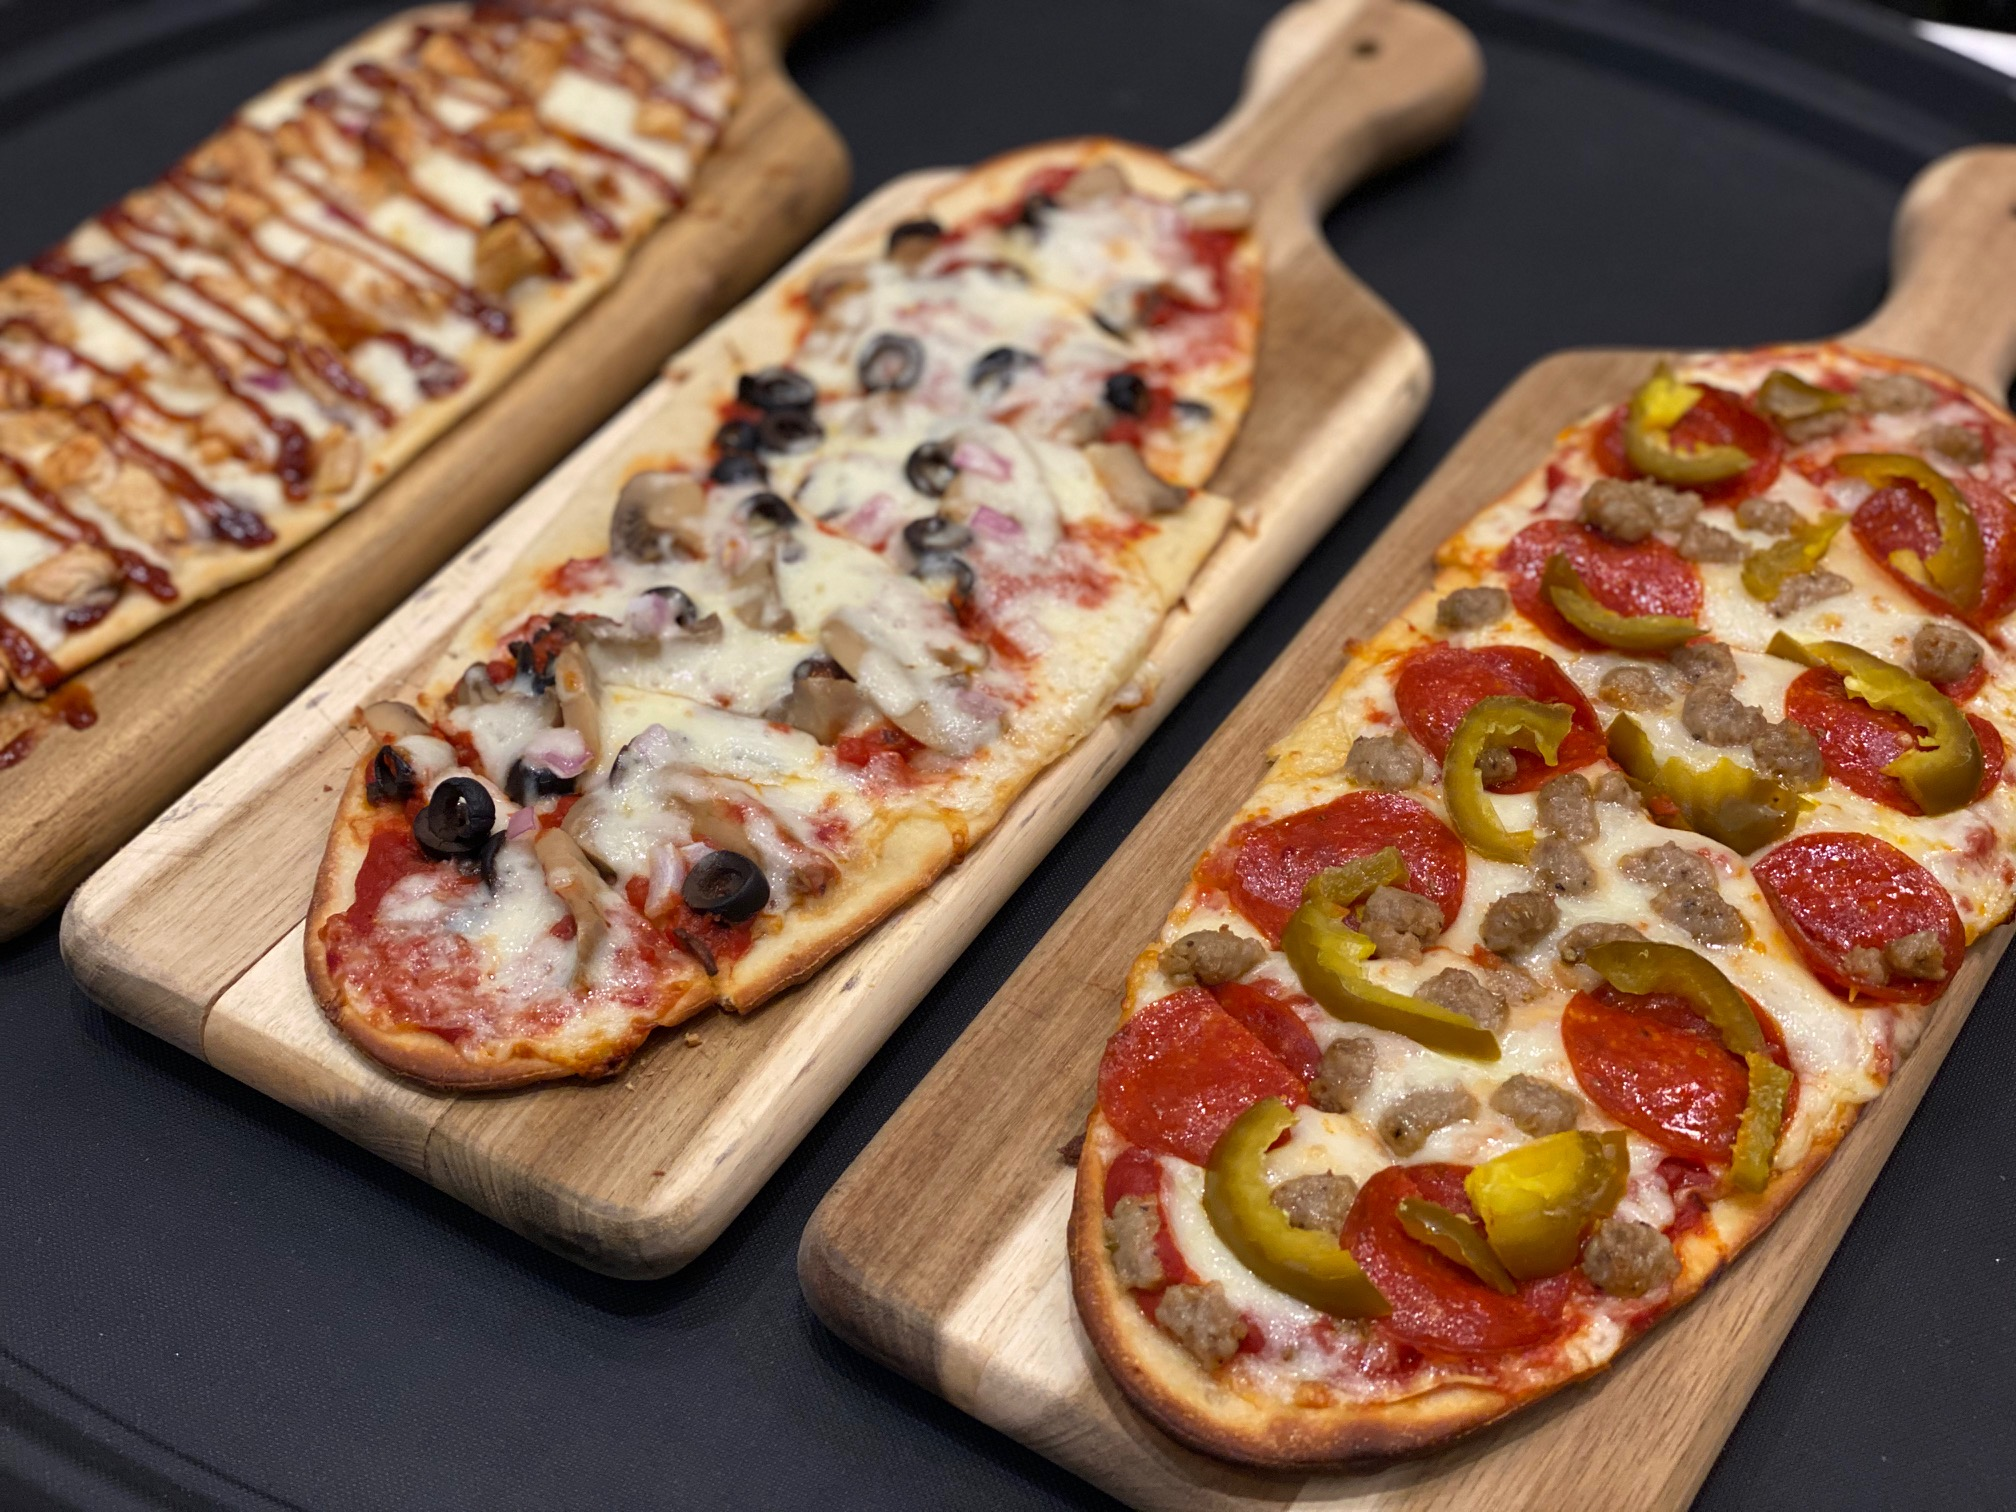 Upgraded Movie-Going Experience at the Bow Tie Cinemas and Majestic Bar in Stamford flatbreads